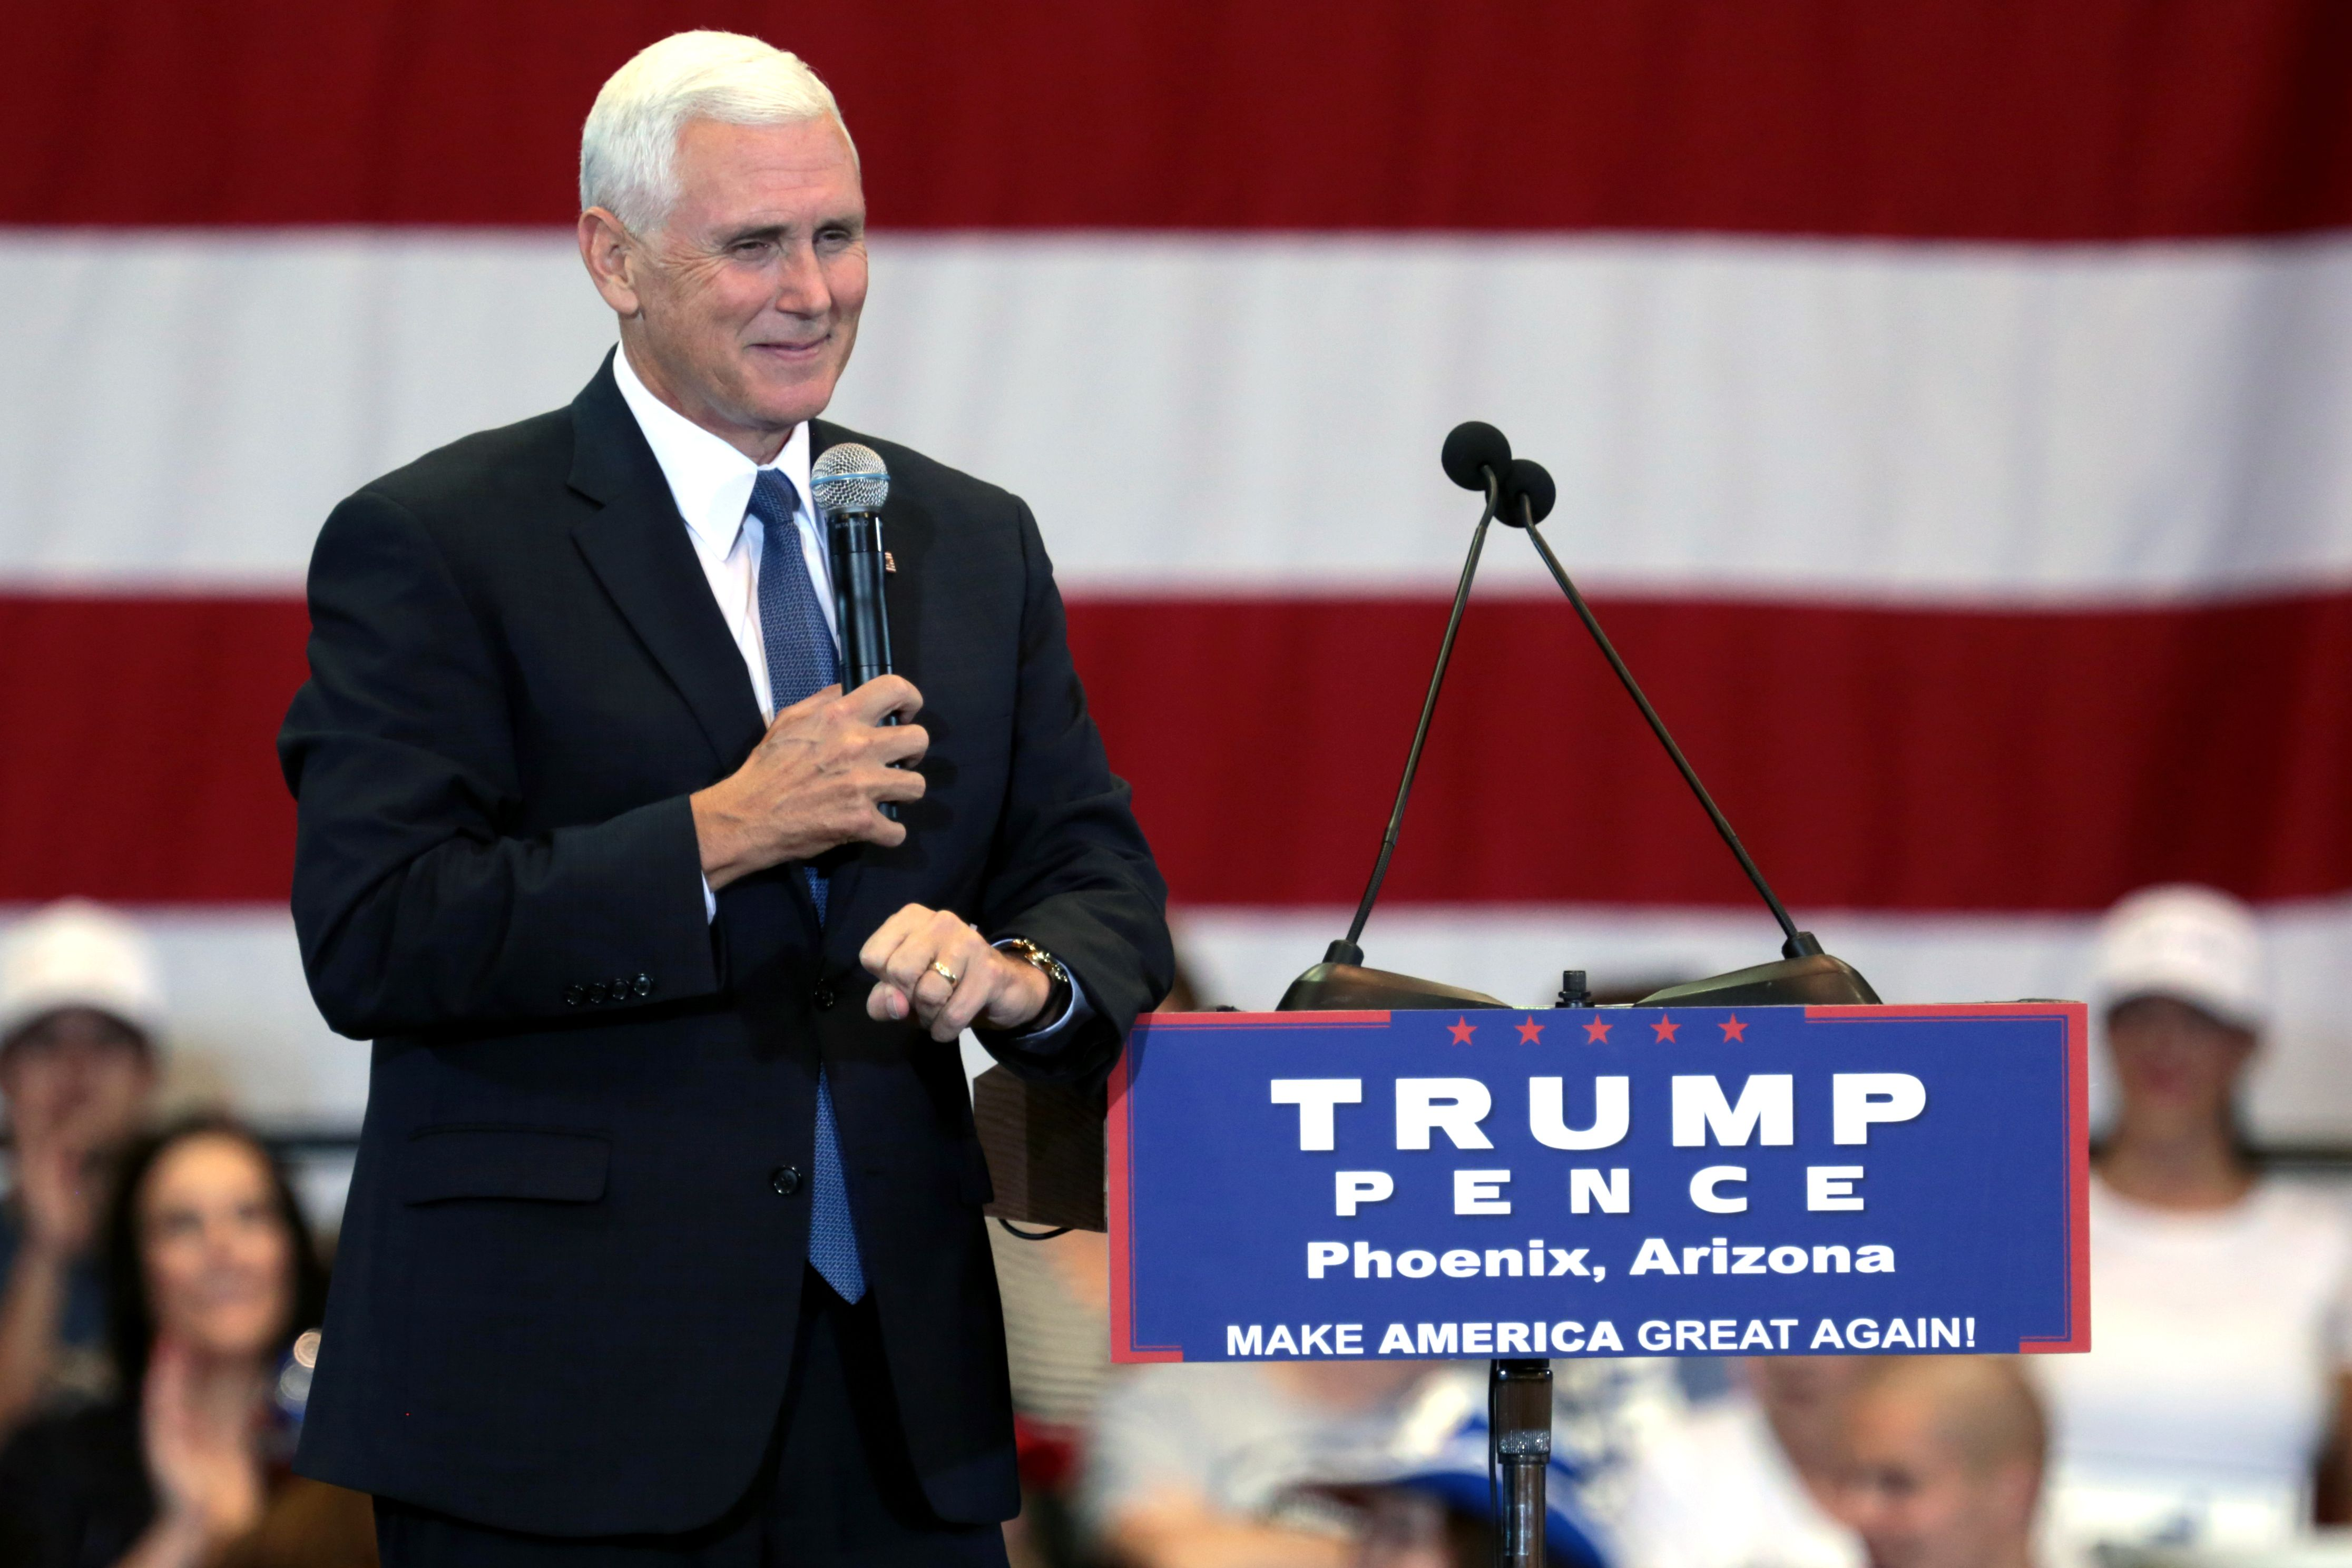 Pence Will Try To Convey Steadiness At VP Debate, But He's Just As Dangerous As Trump